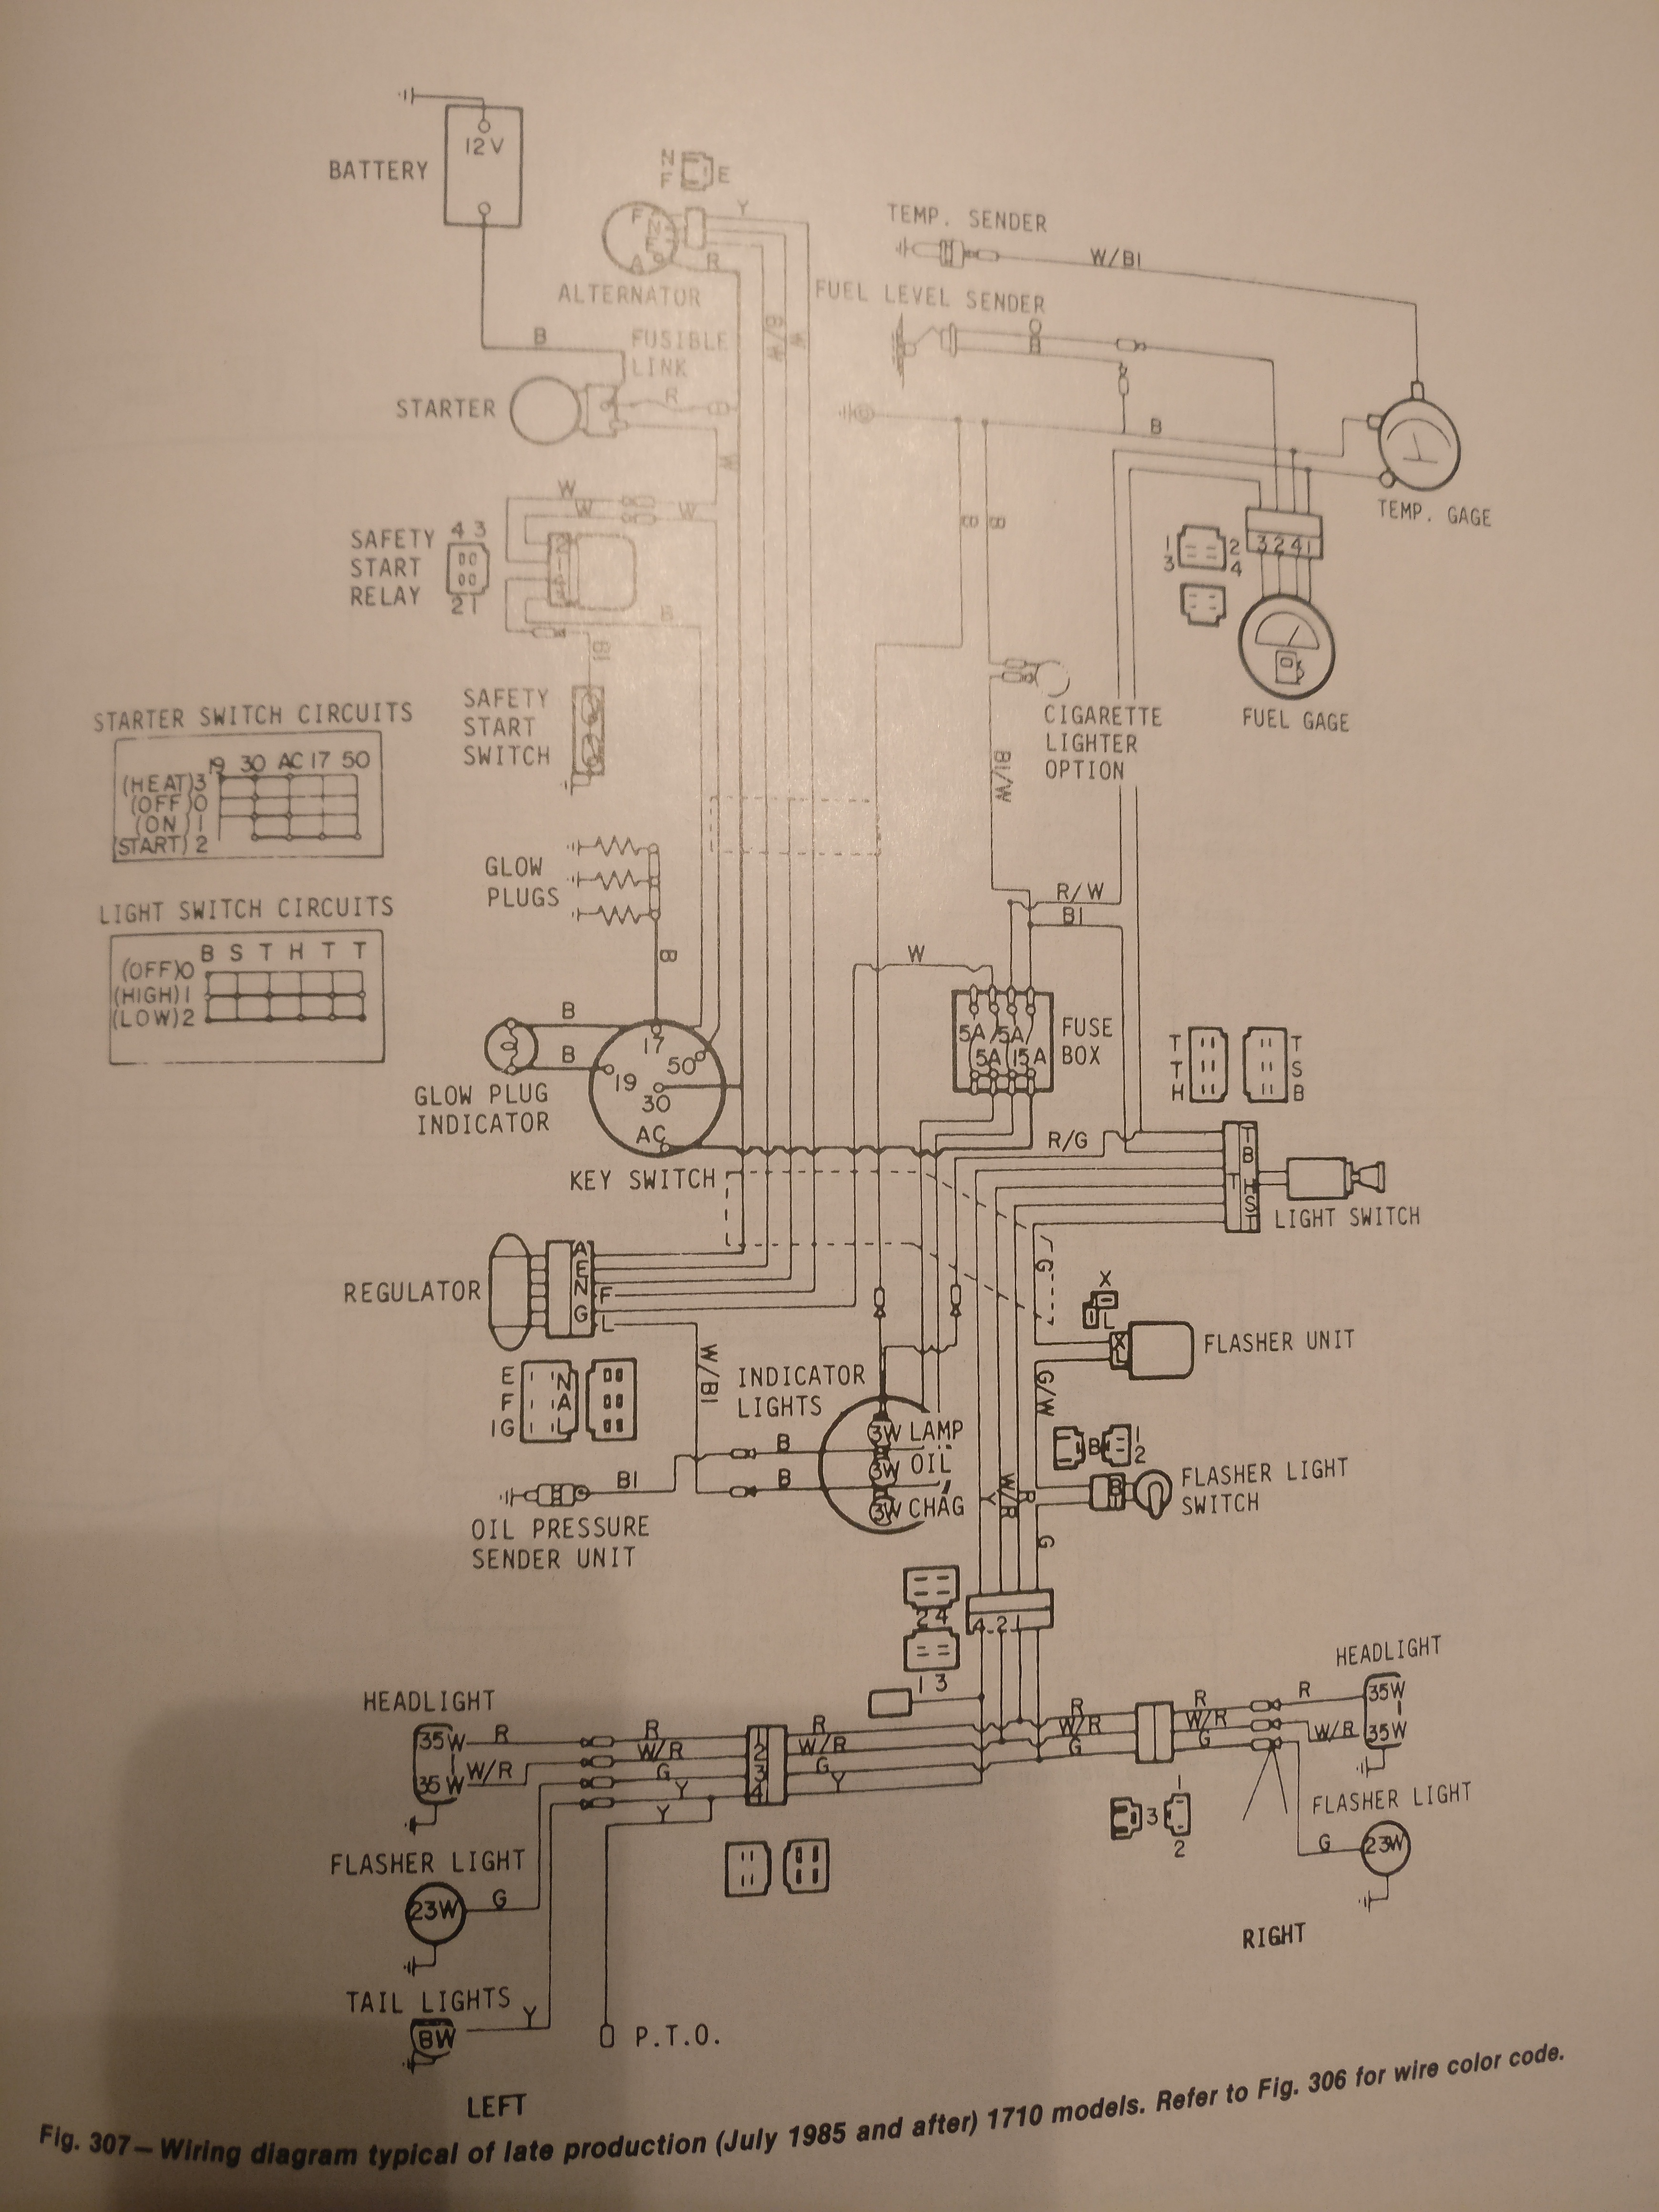 12v wiring diagram ford 800 tractor free picture 1710 ford tractor 12v wiring diagram wiring diagram data  1710 ford tractor 12v wiring diagram